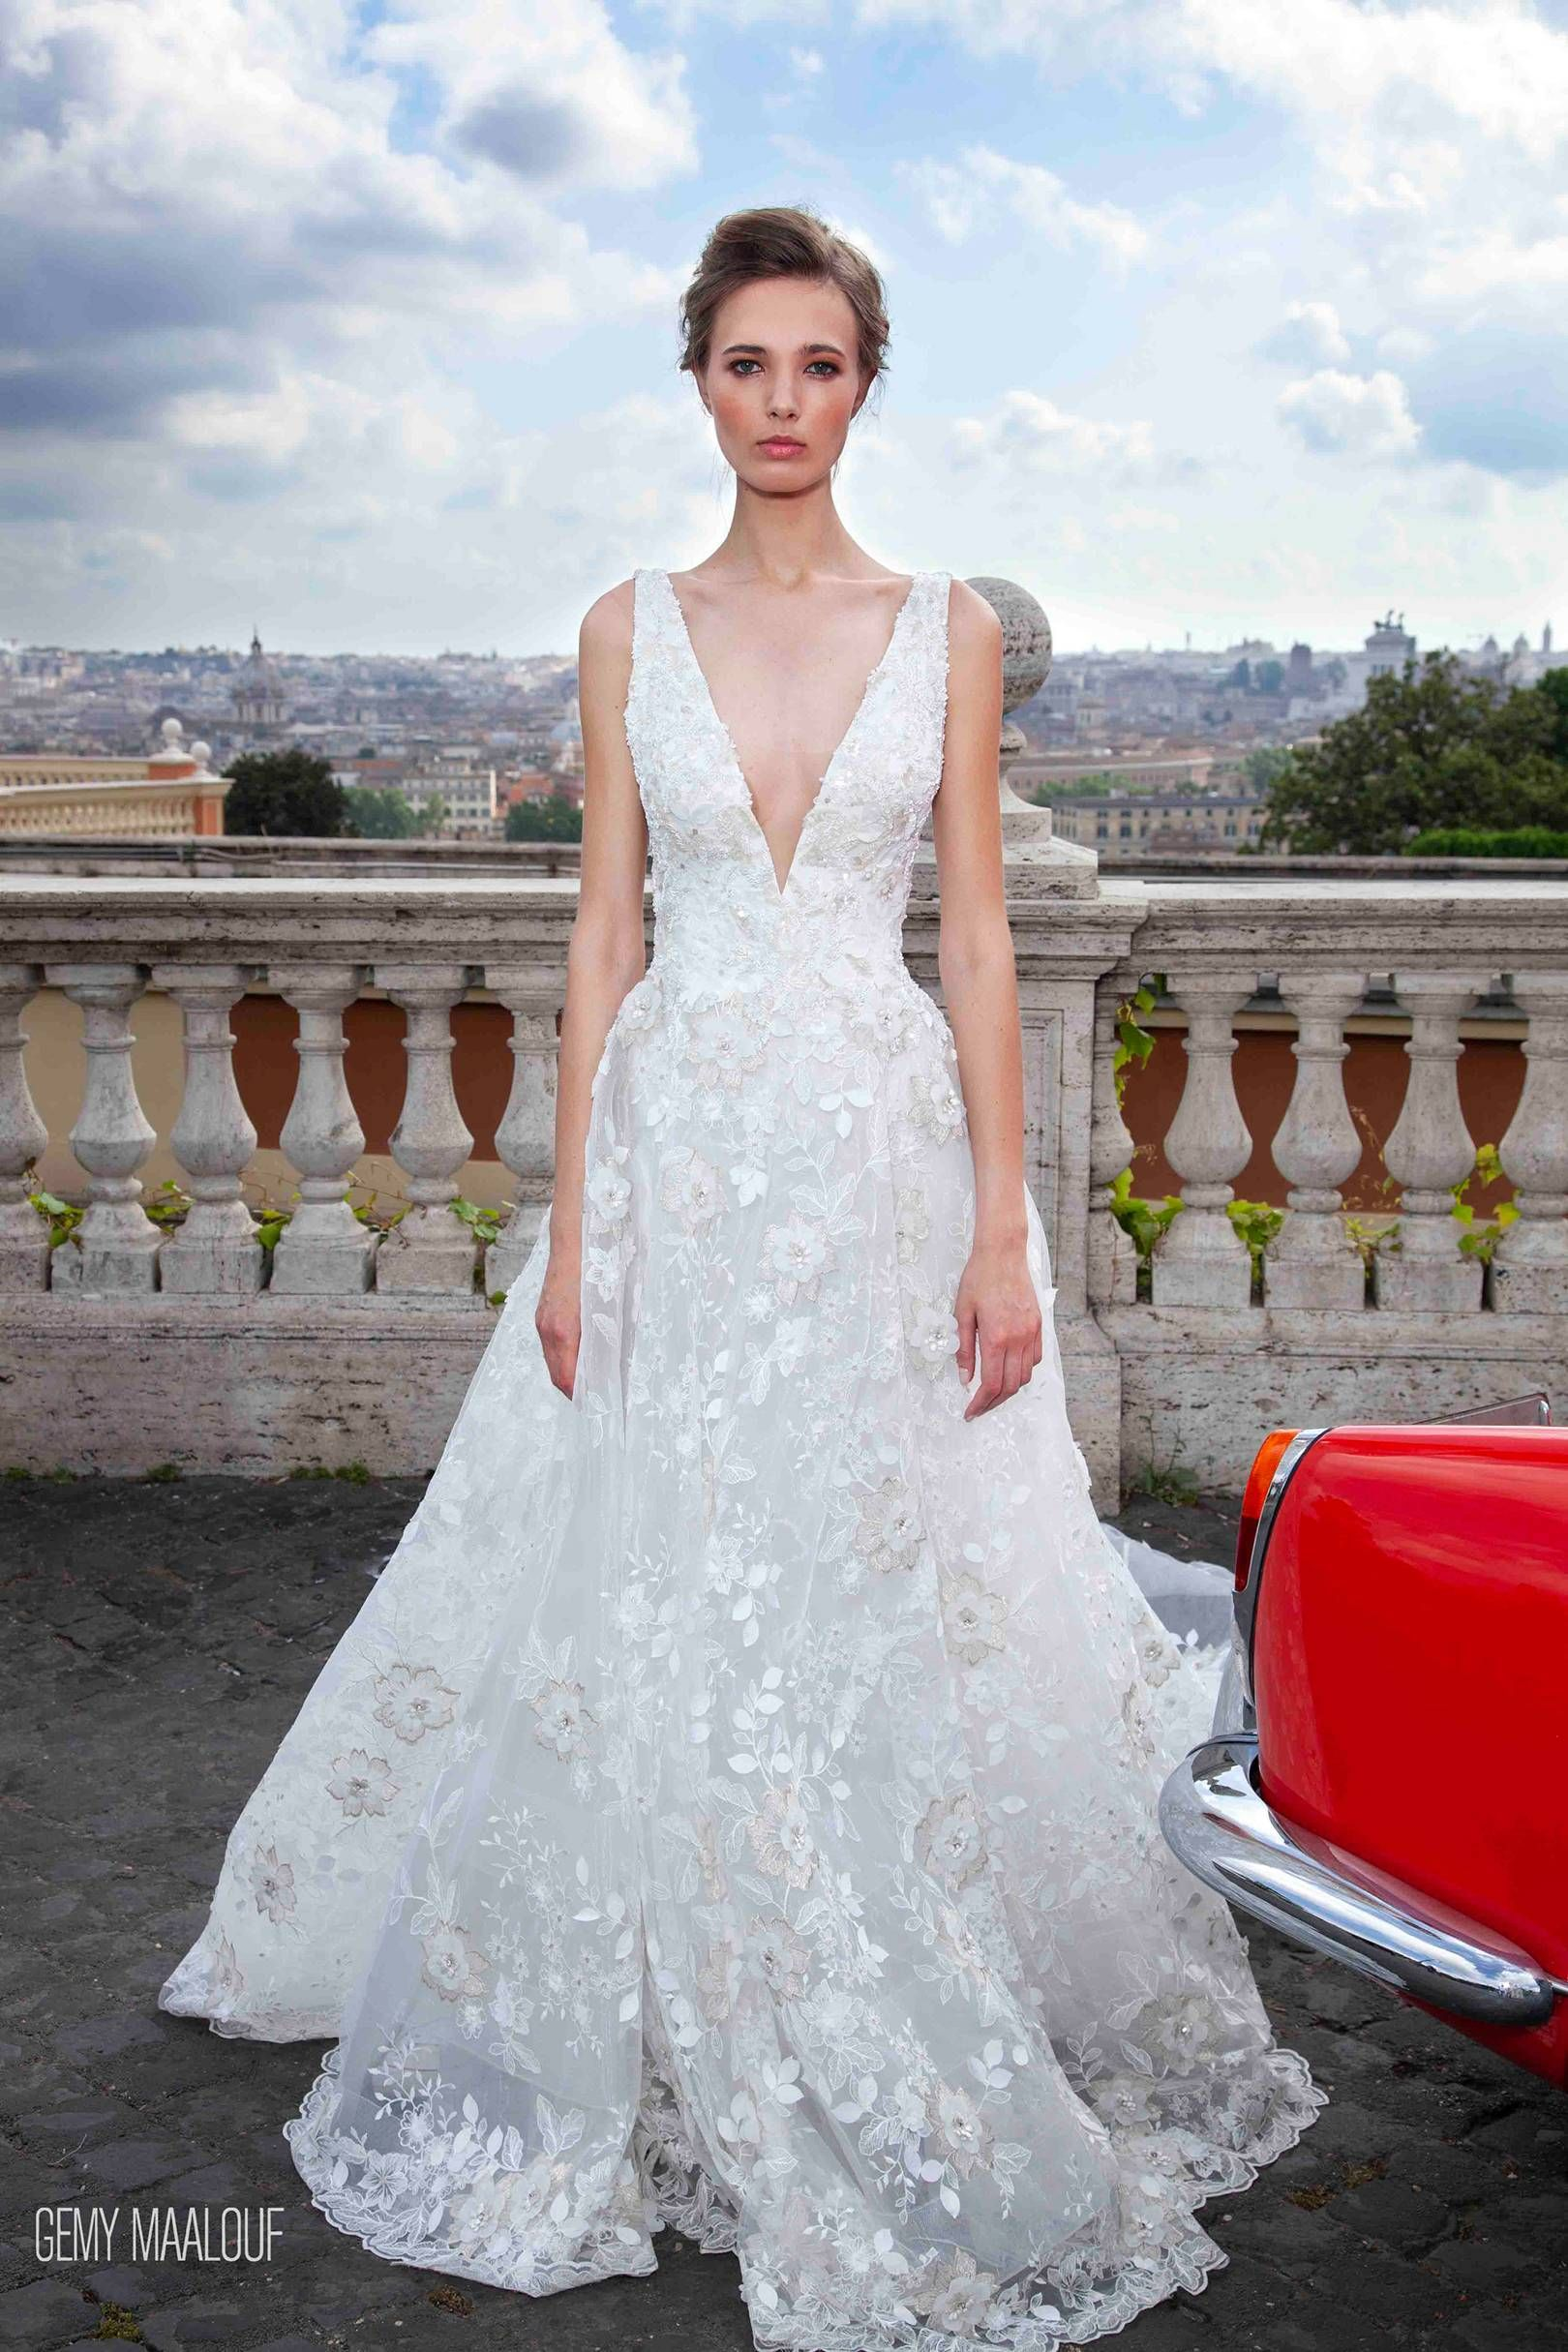 aee5200ce117 GEMY MAALOUF Bridal 2019 exclusively available in London at Mirror Mirror